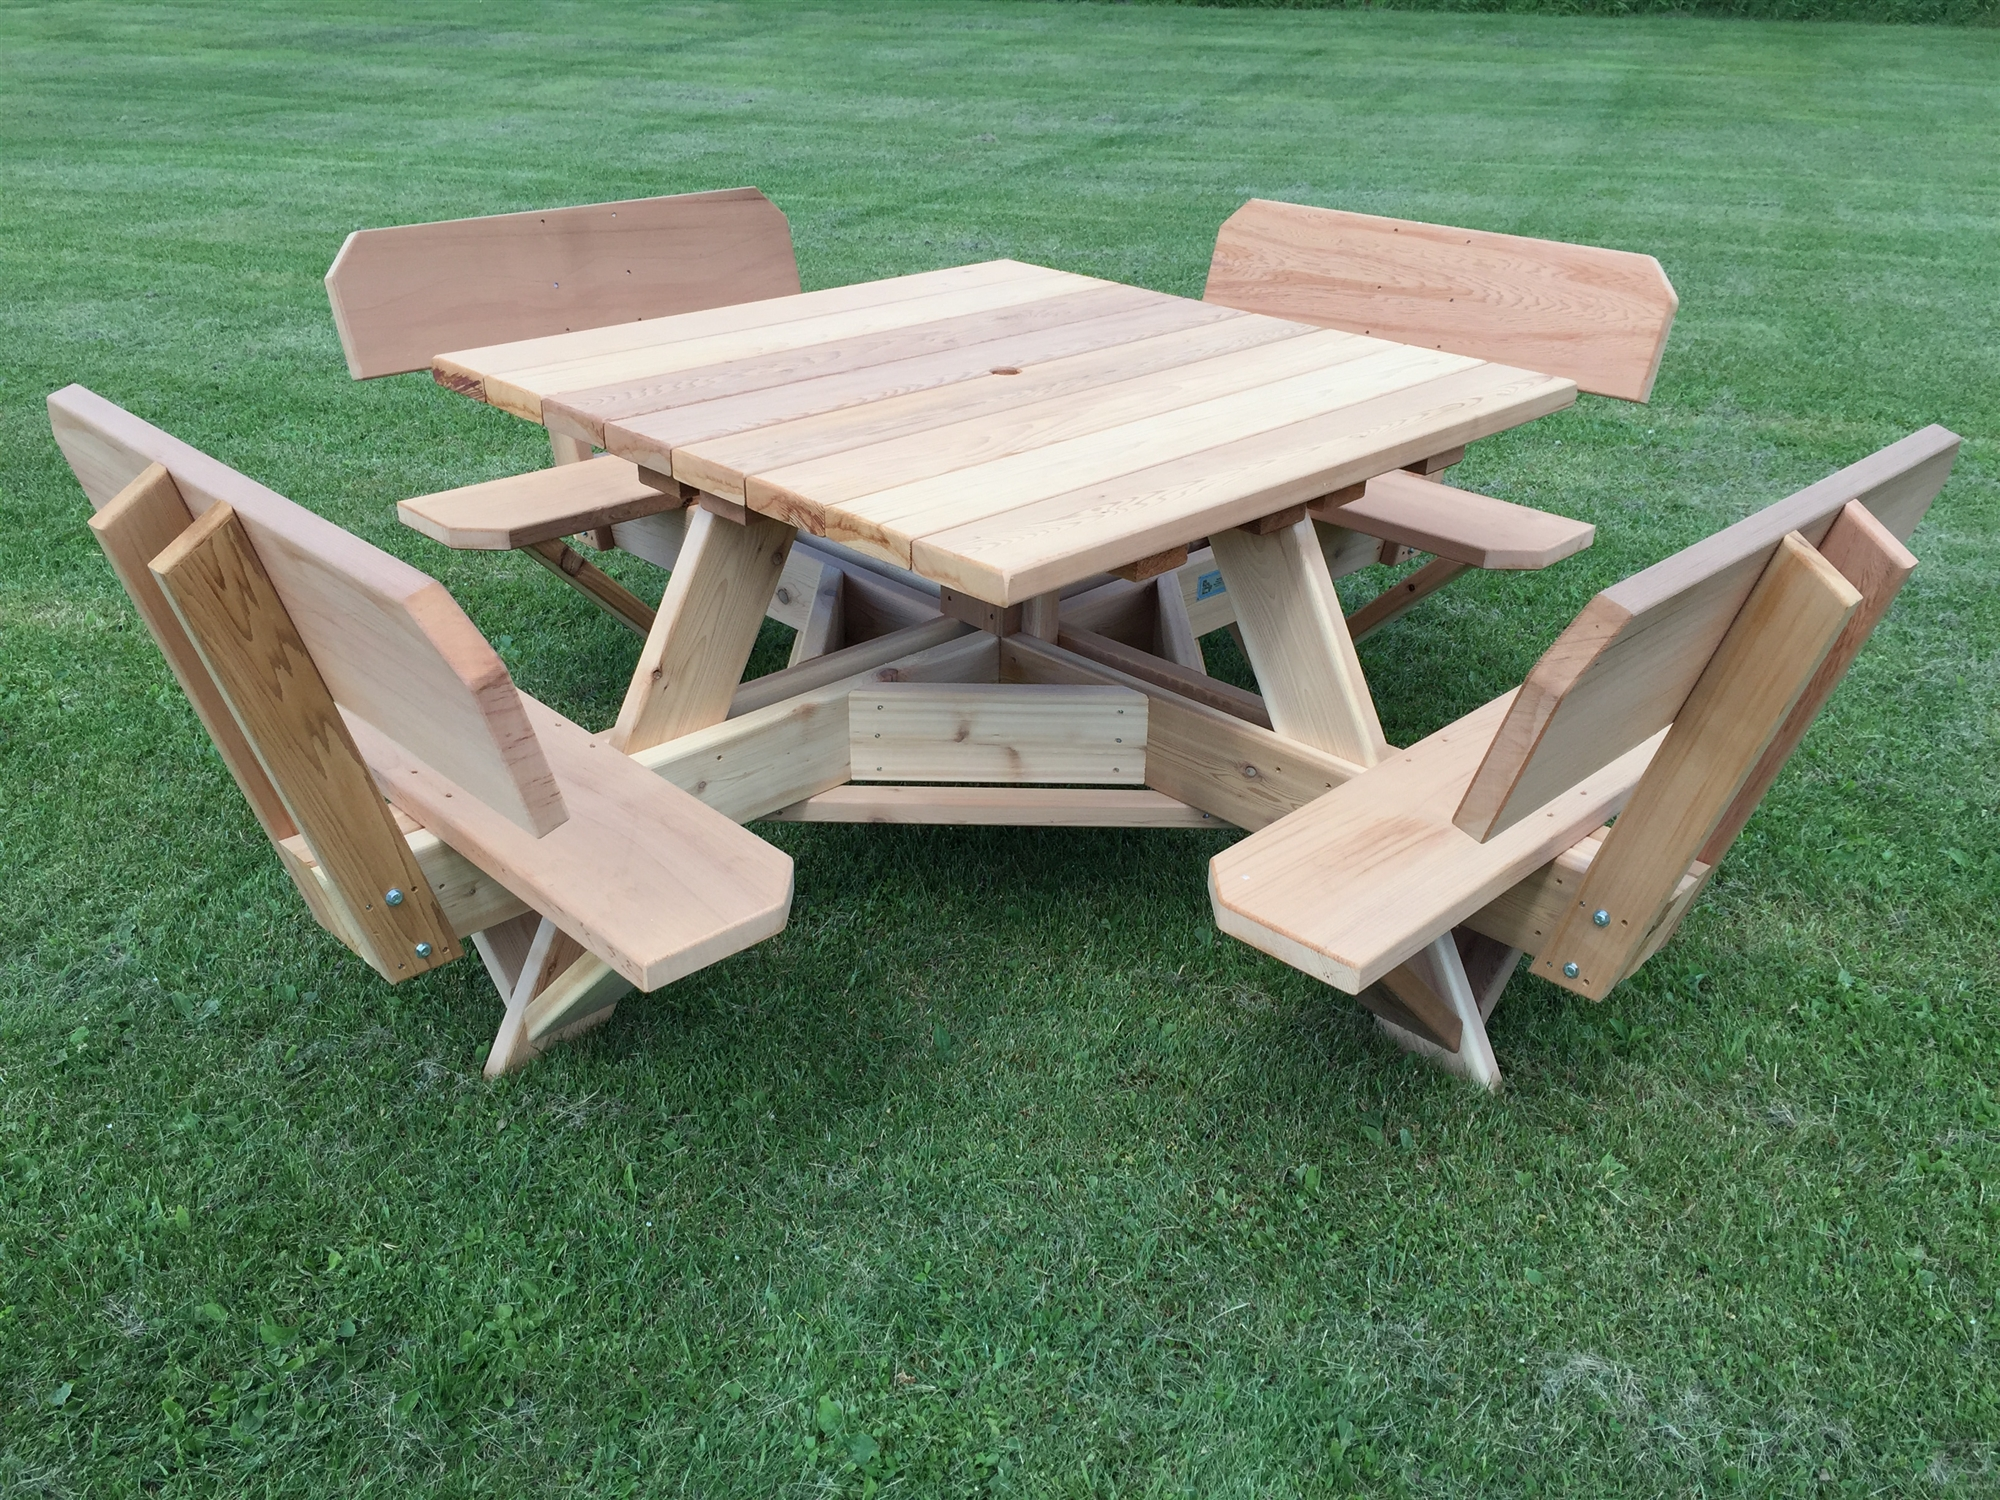 Square Patio Table With Umbrella Hole Picnic Table With Easy - Timber picnic table